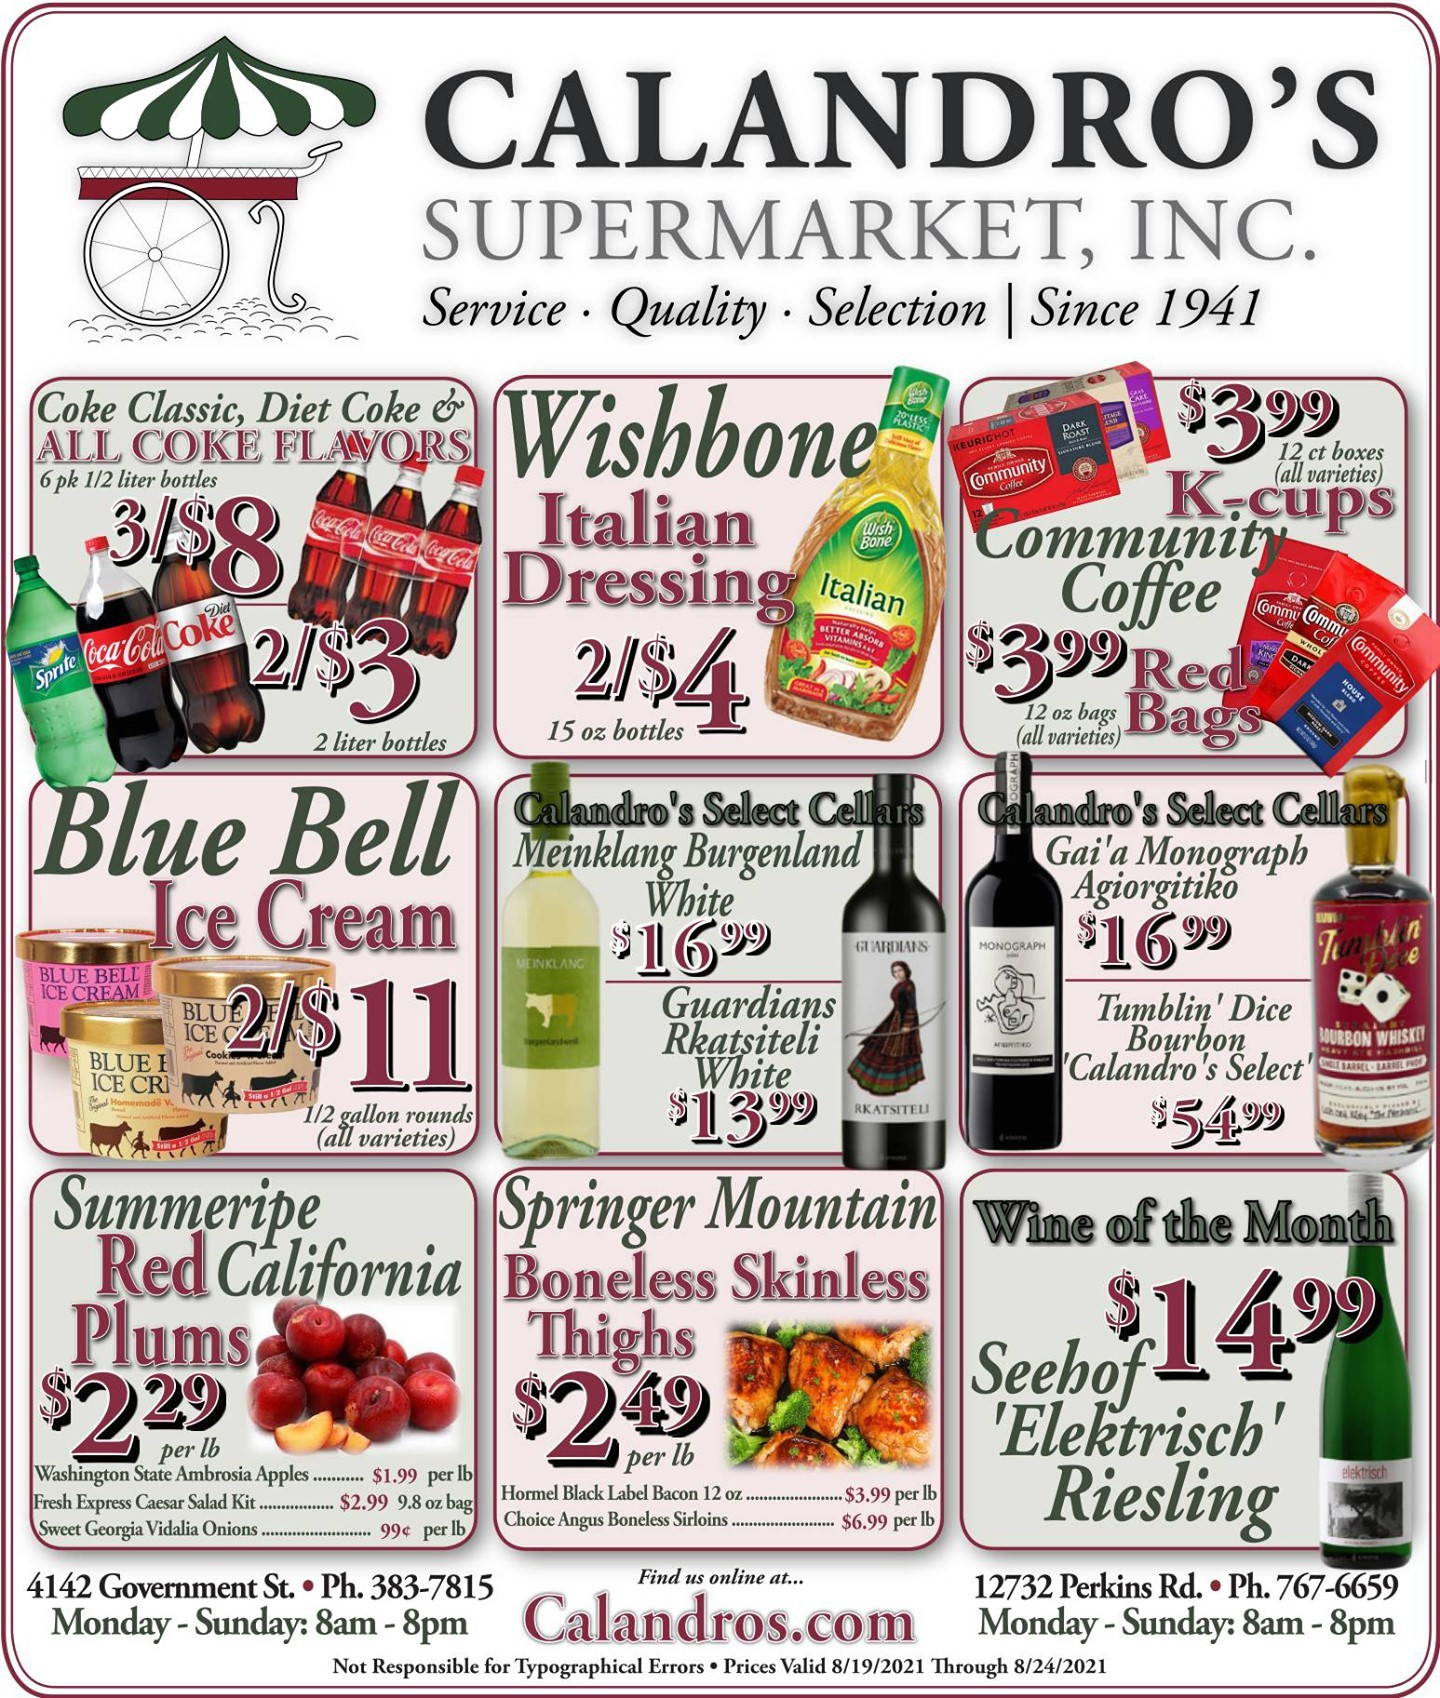 Calandro's Wonderful Deals and Finds for This Week! (8/19/2021 – 8/24/2021) http://dlvr.it/S5wF7W…